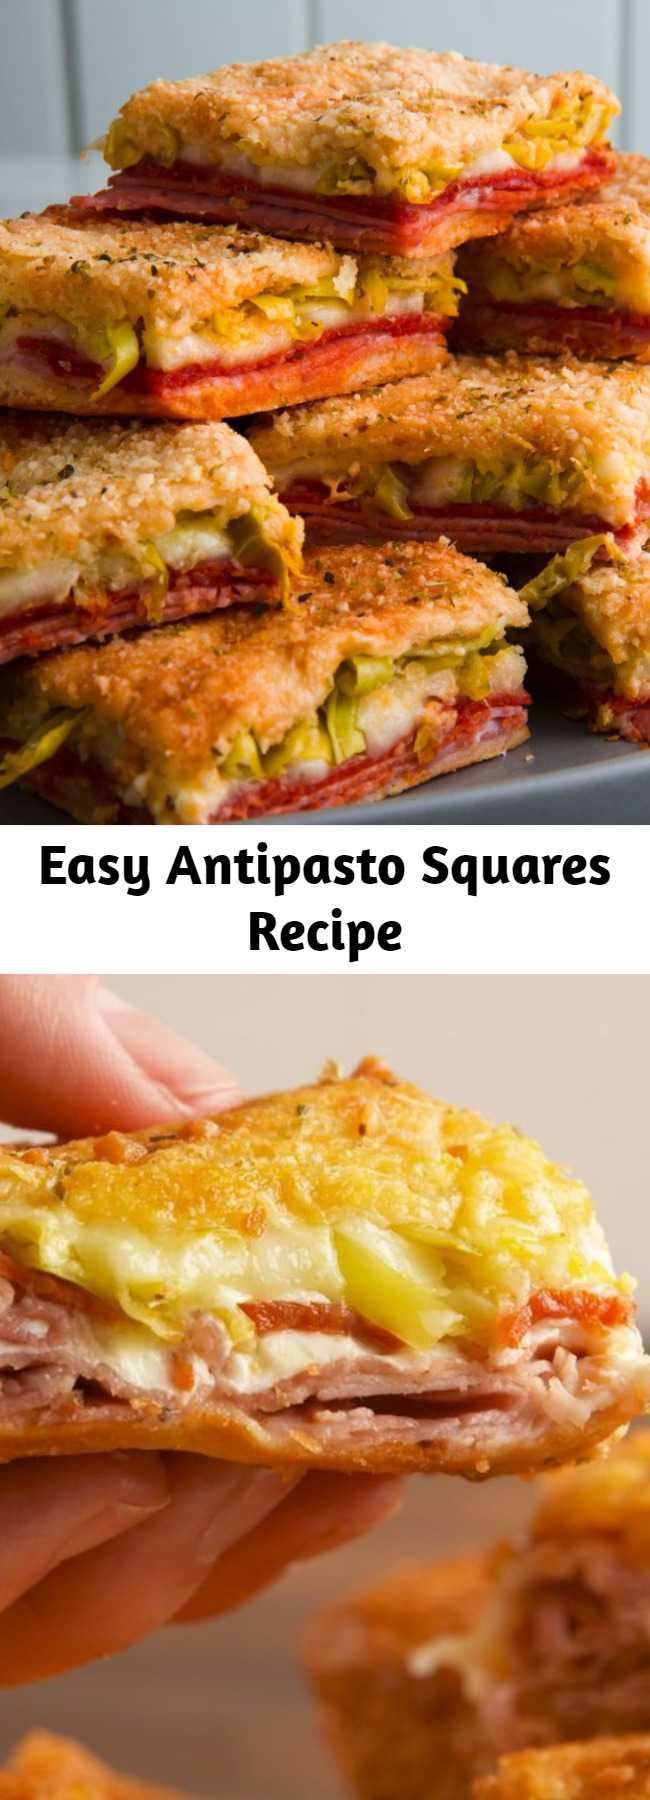 Easy Antipasto Squares Recipe - Turns out an antipasto salad like this gets even better when you layer it between crescent sheets and we aren't mad about that at all. #easy #recipe #antipasto #pizza #squares #bites #superbowlrecipe #superbowl #gameday #appetizer #snack #cheese #crescentroll #easyrecipes #mozzarella #provolone #pepperoni #ham #peppers